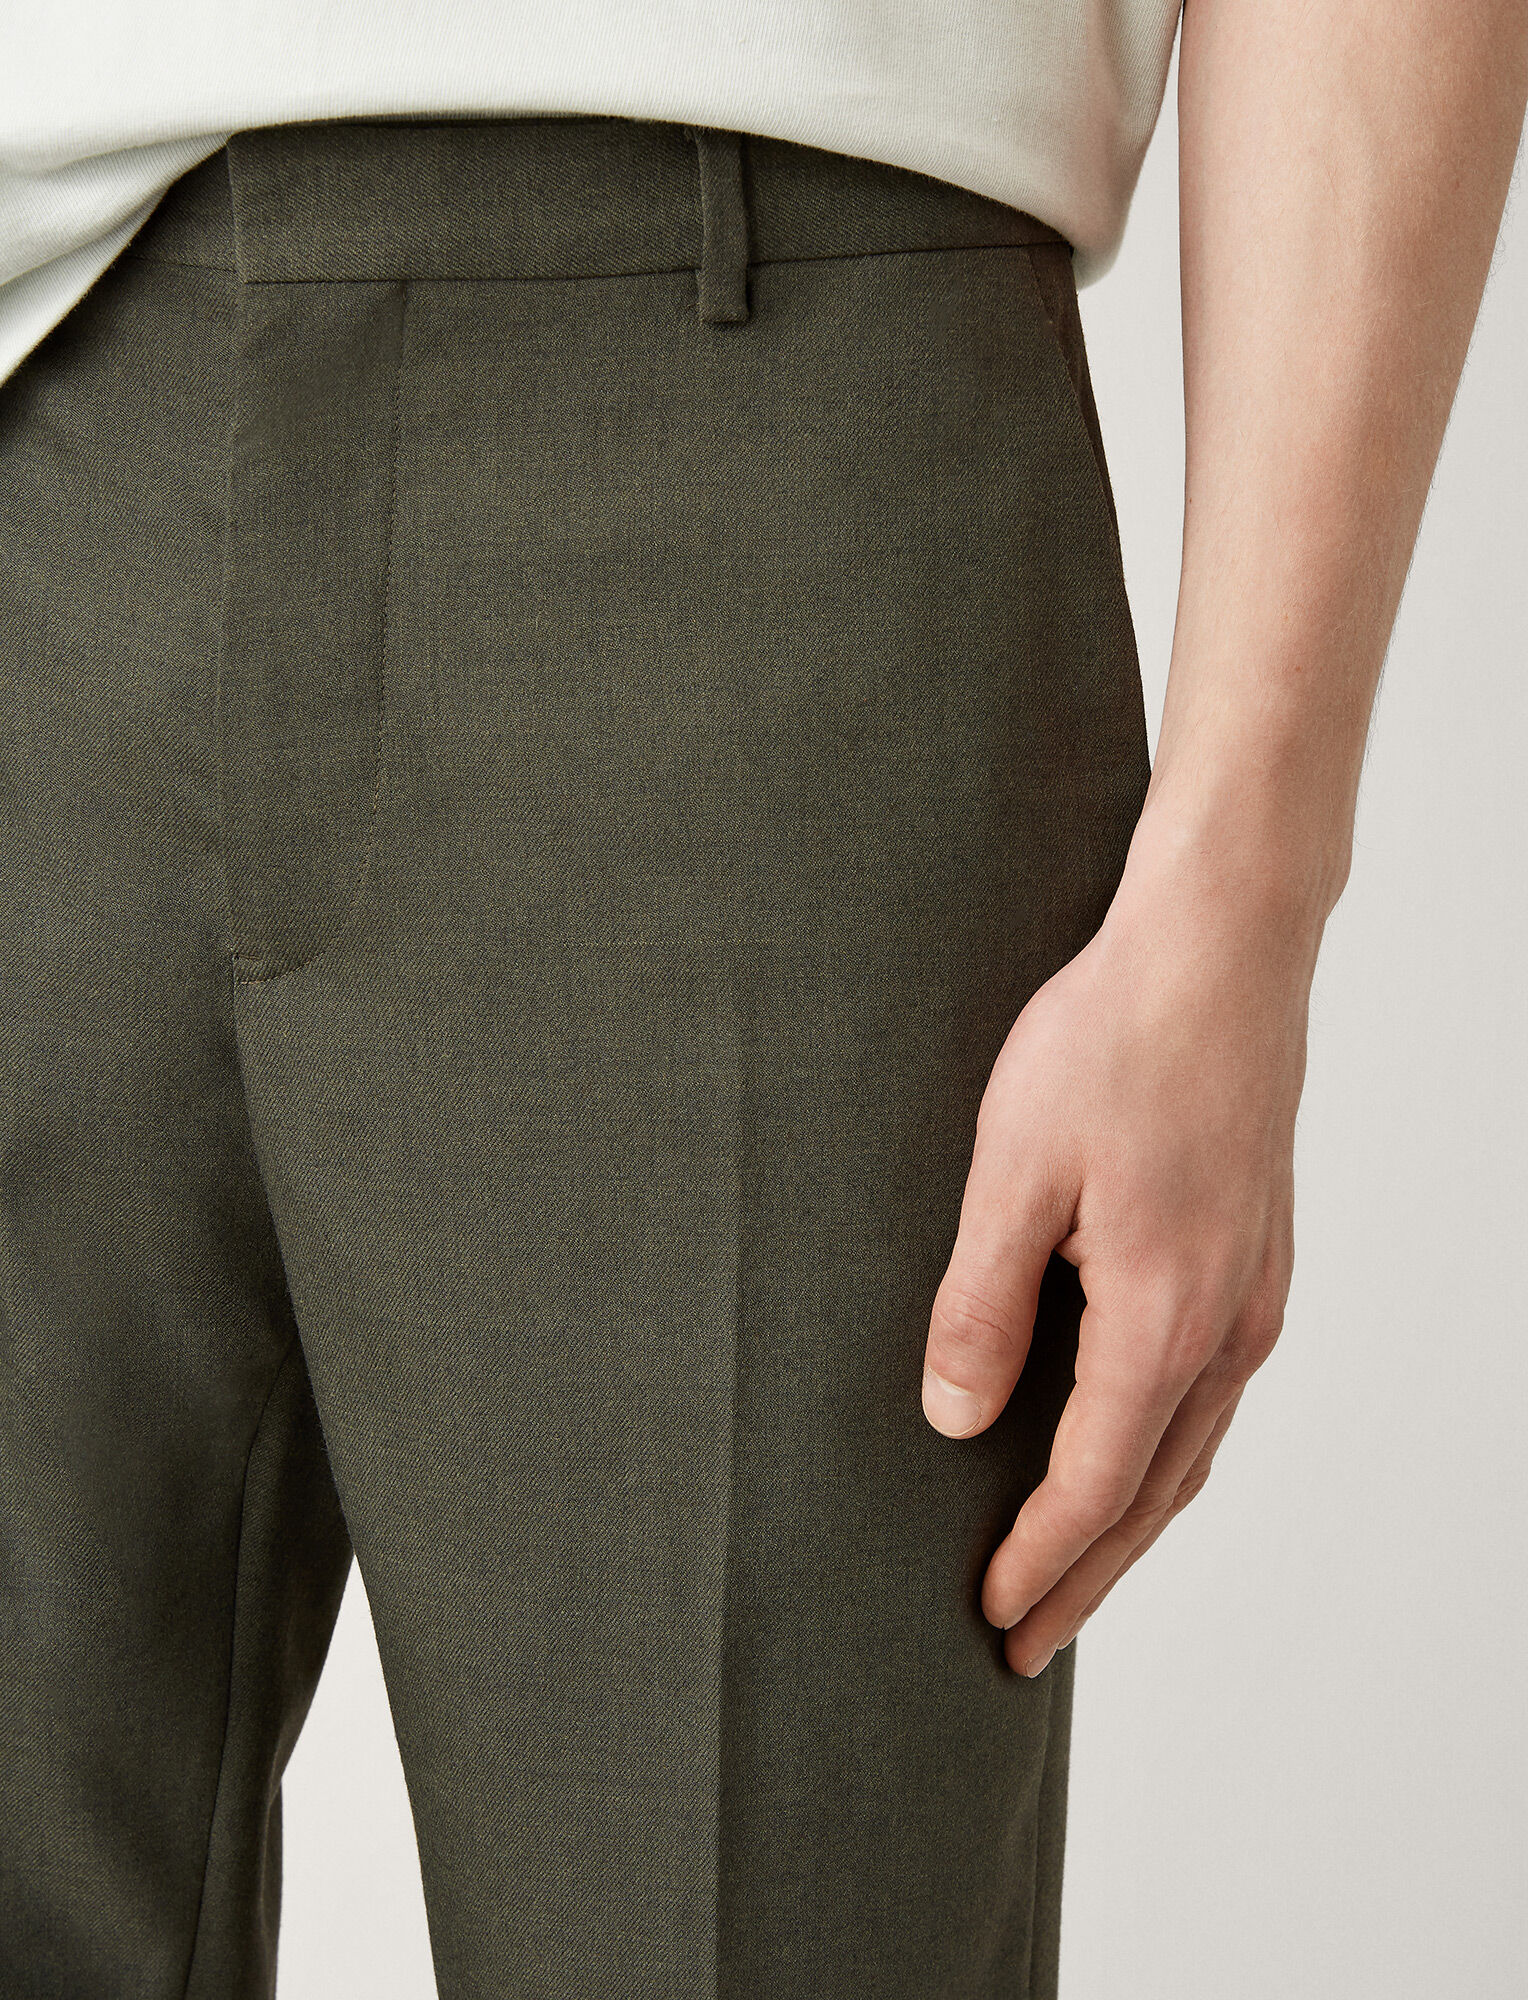 Joseph, Jack Flannel Stretch Trousers, in KHAKI